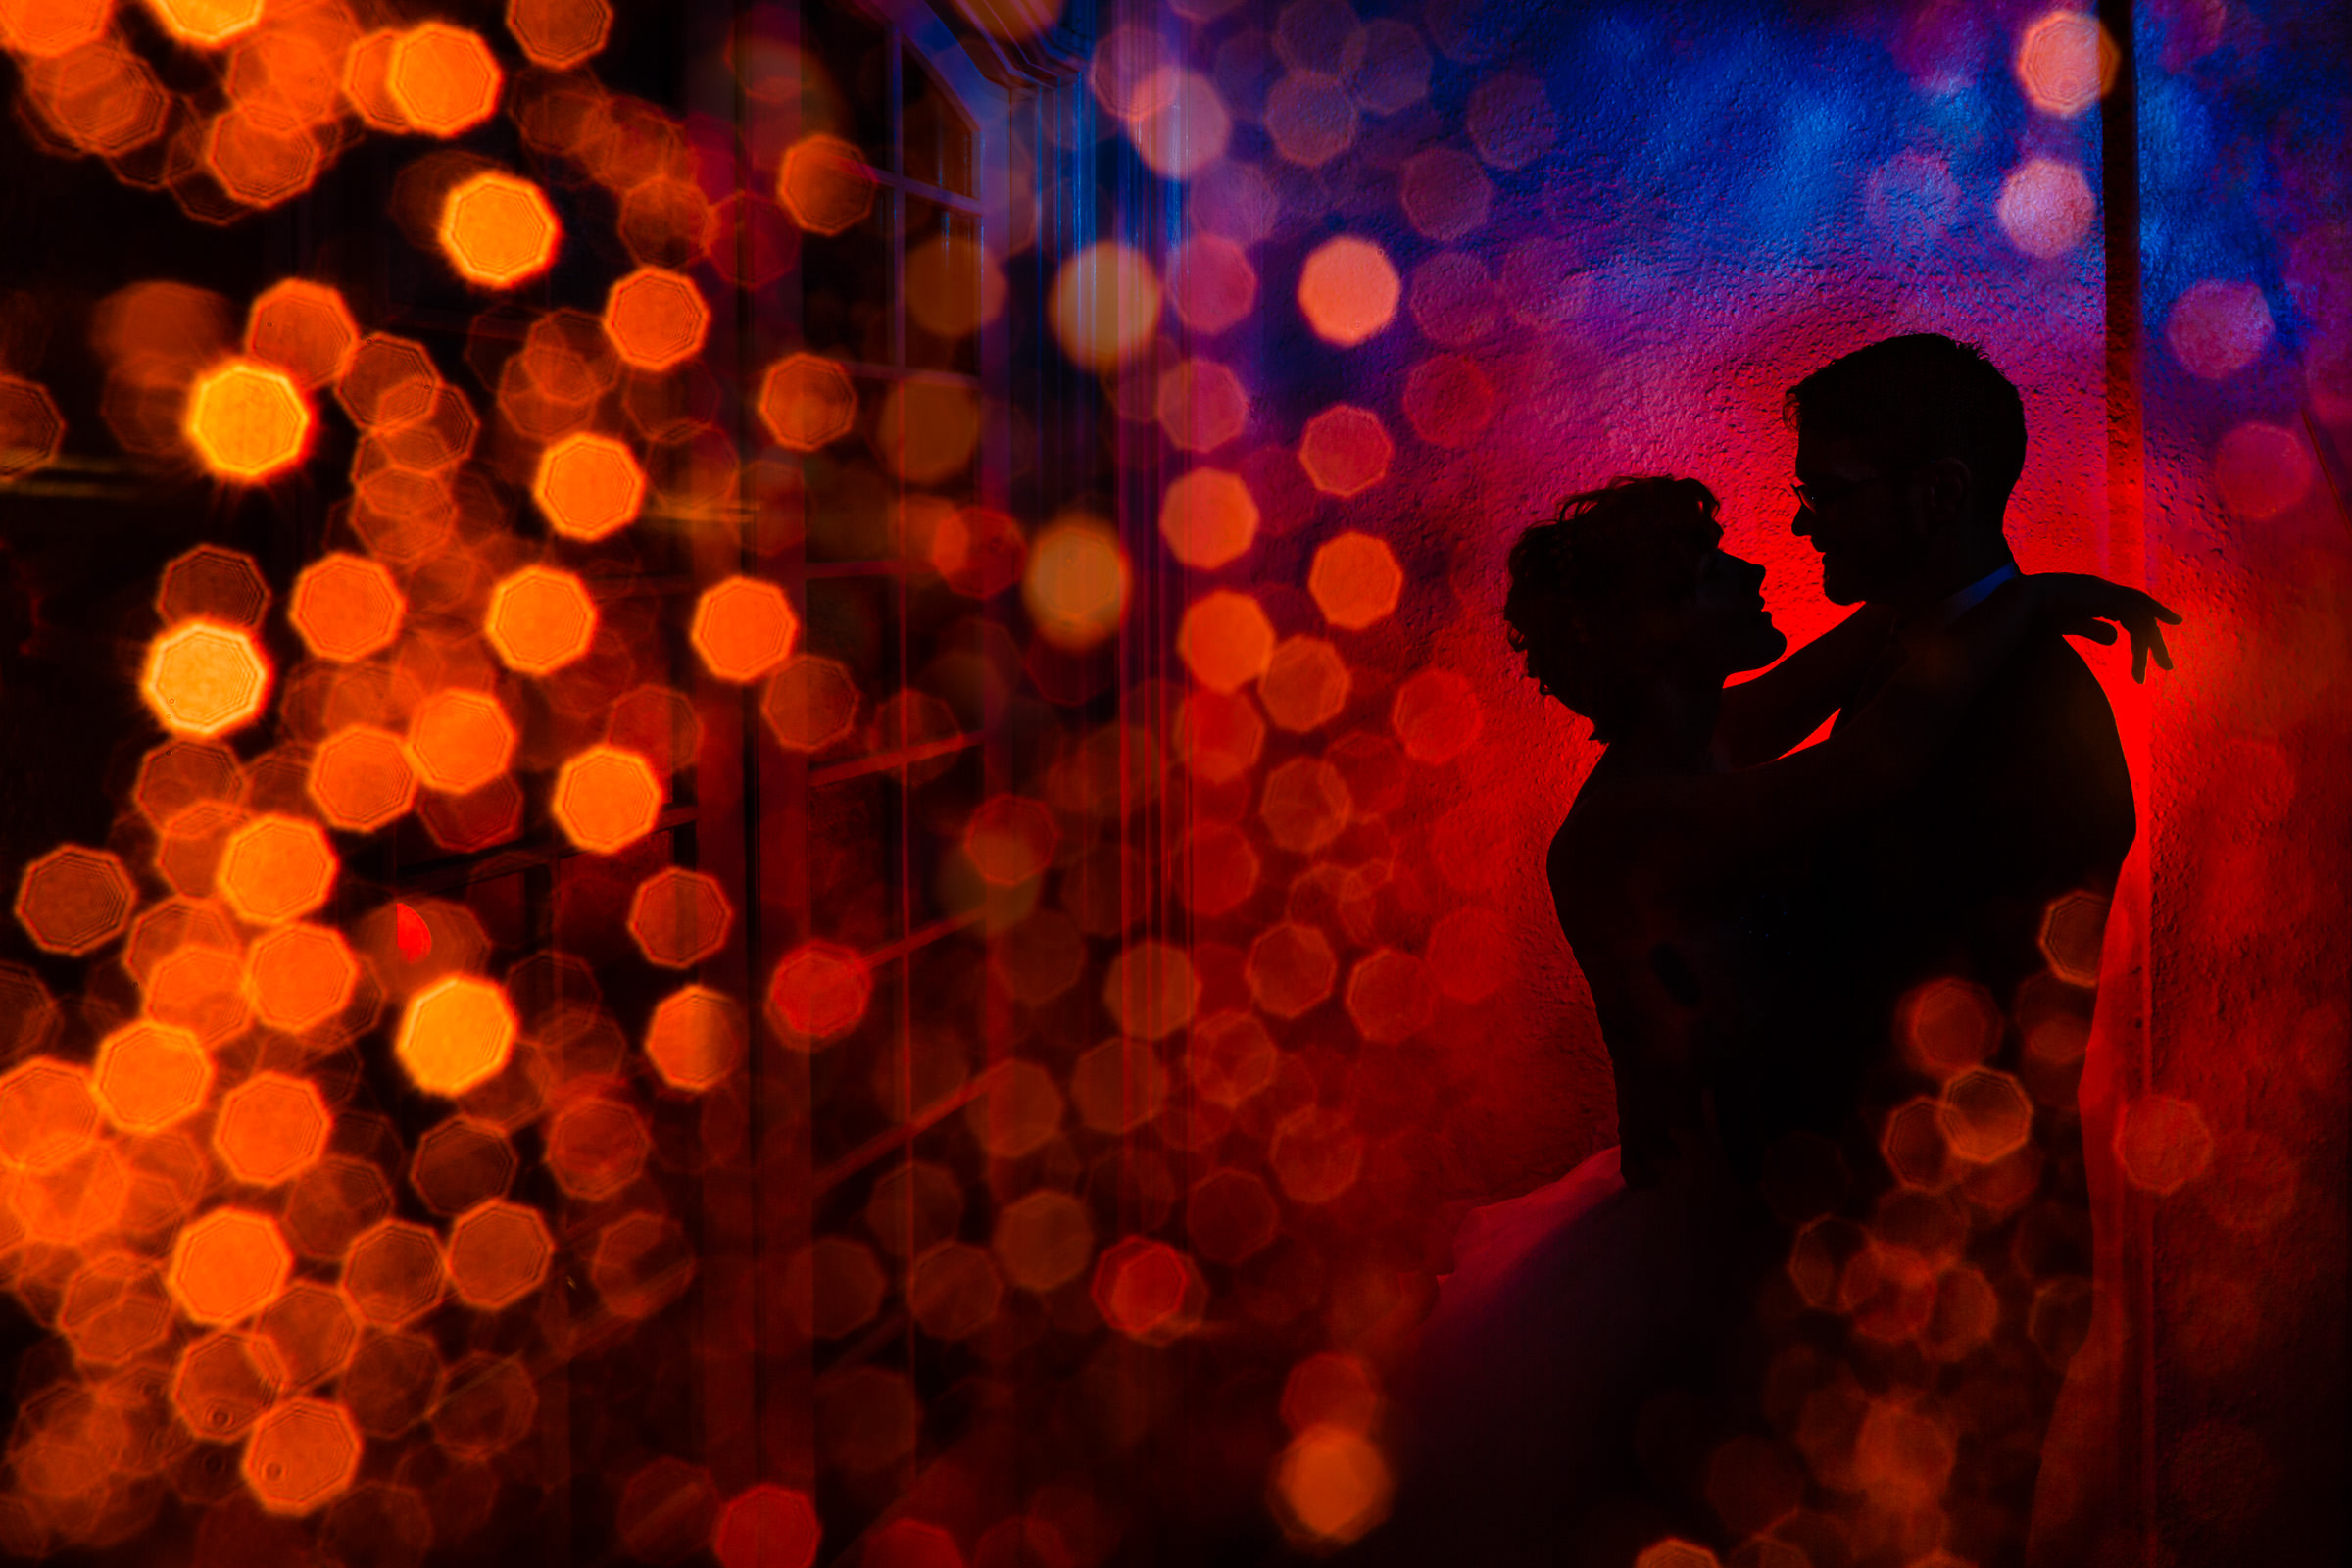 silhouette-of-couple-embracing-with-bokeh-worlds-best-wedding-photos-josandtree